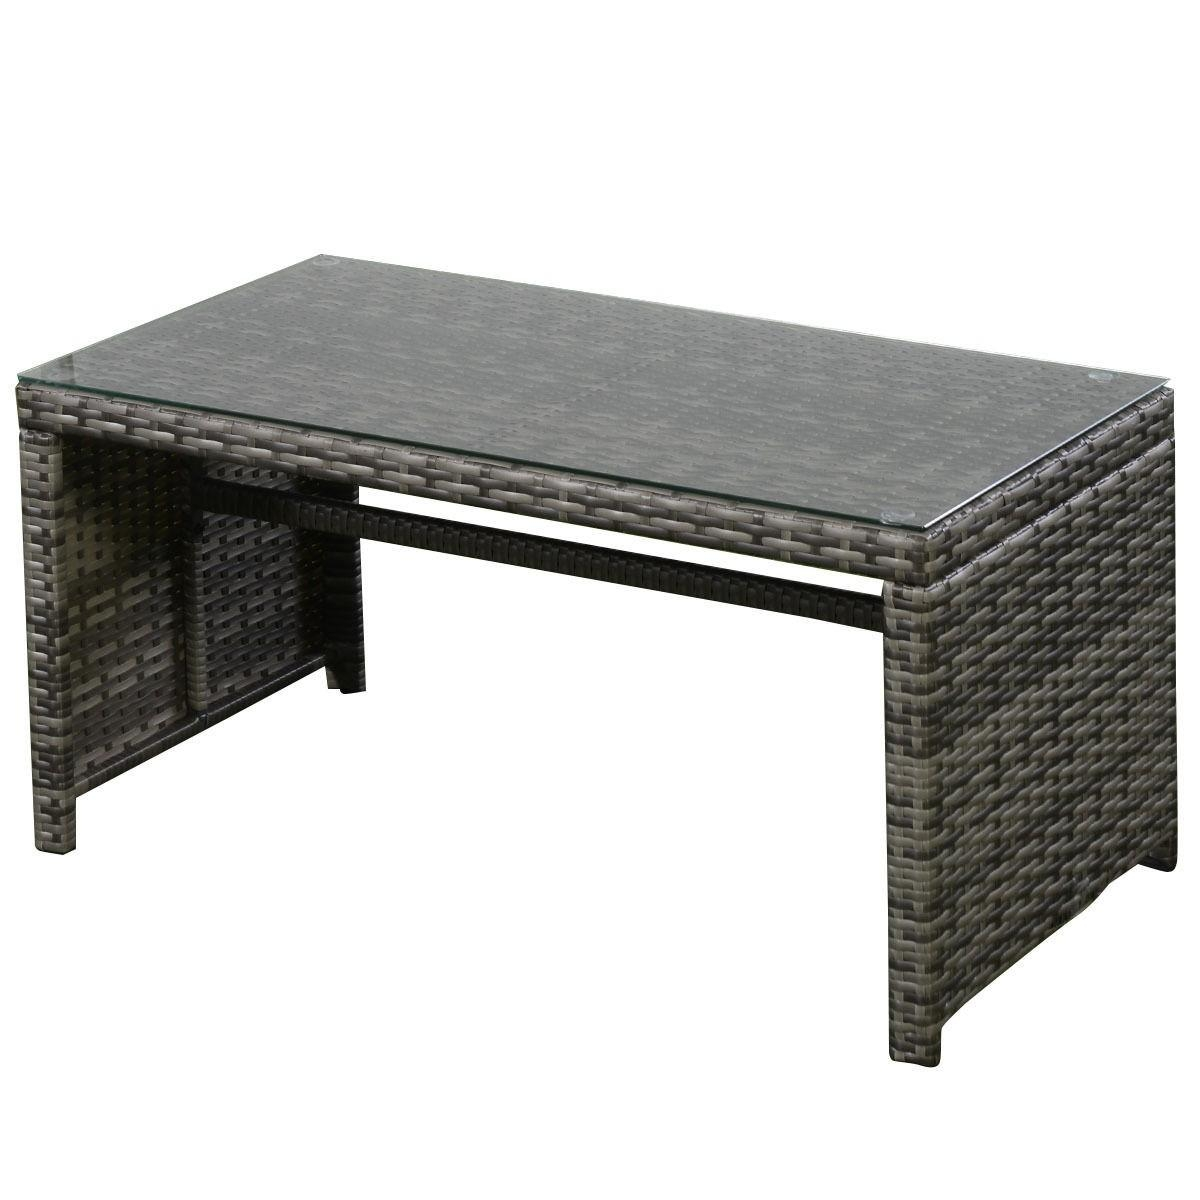 4 Pcs Goplus Outdoor Garden Sofa Furniture Set - Outdoor Furniture intended for Patio Sofa Tables